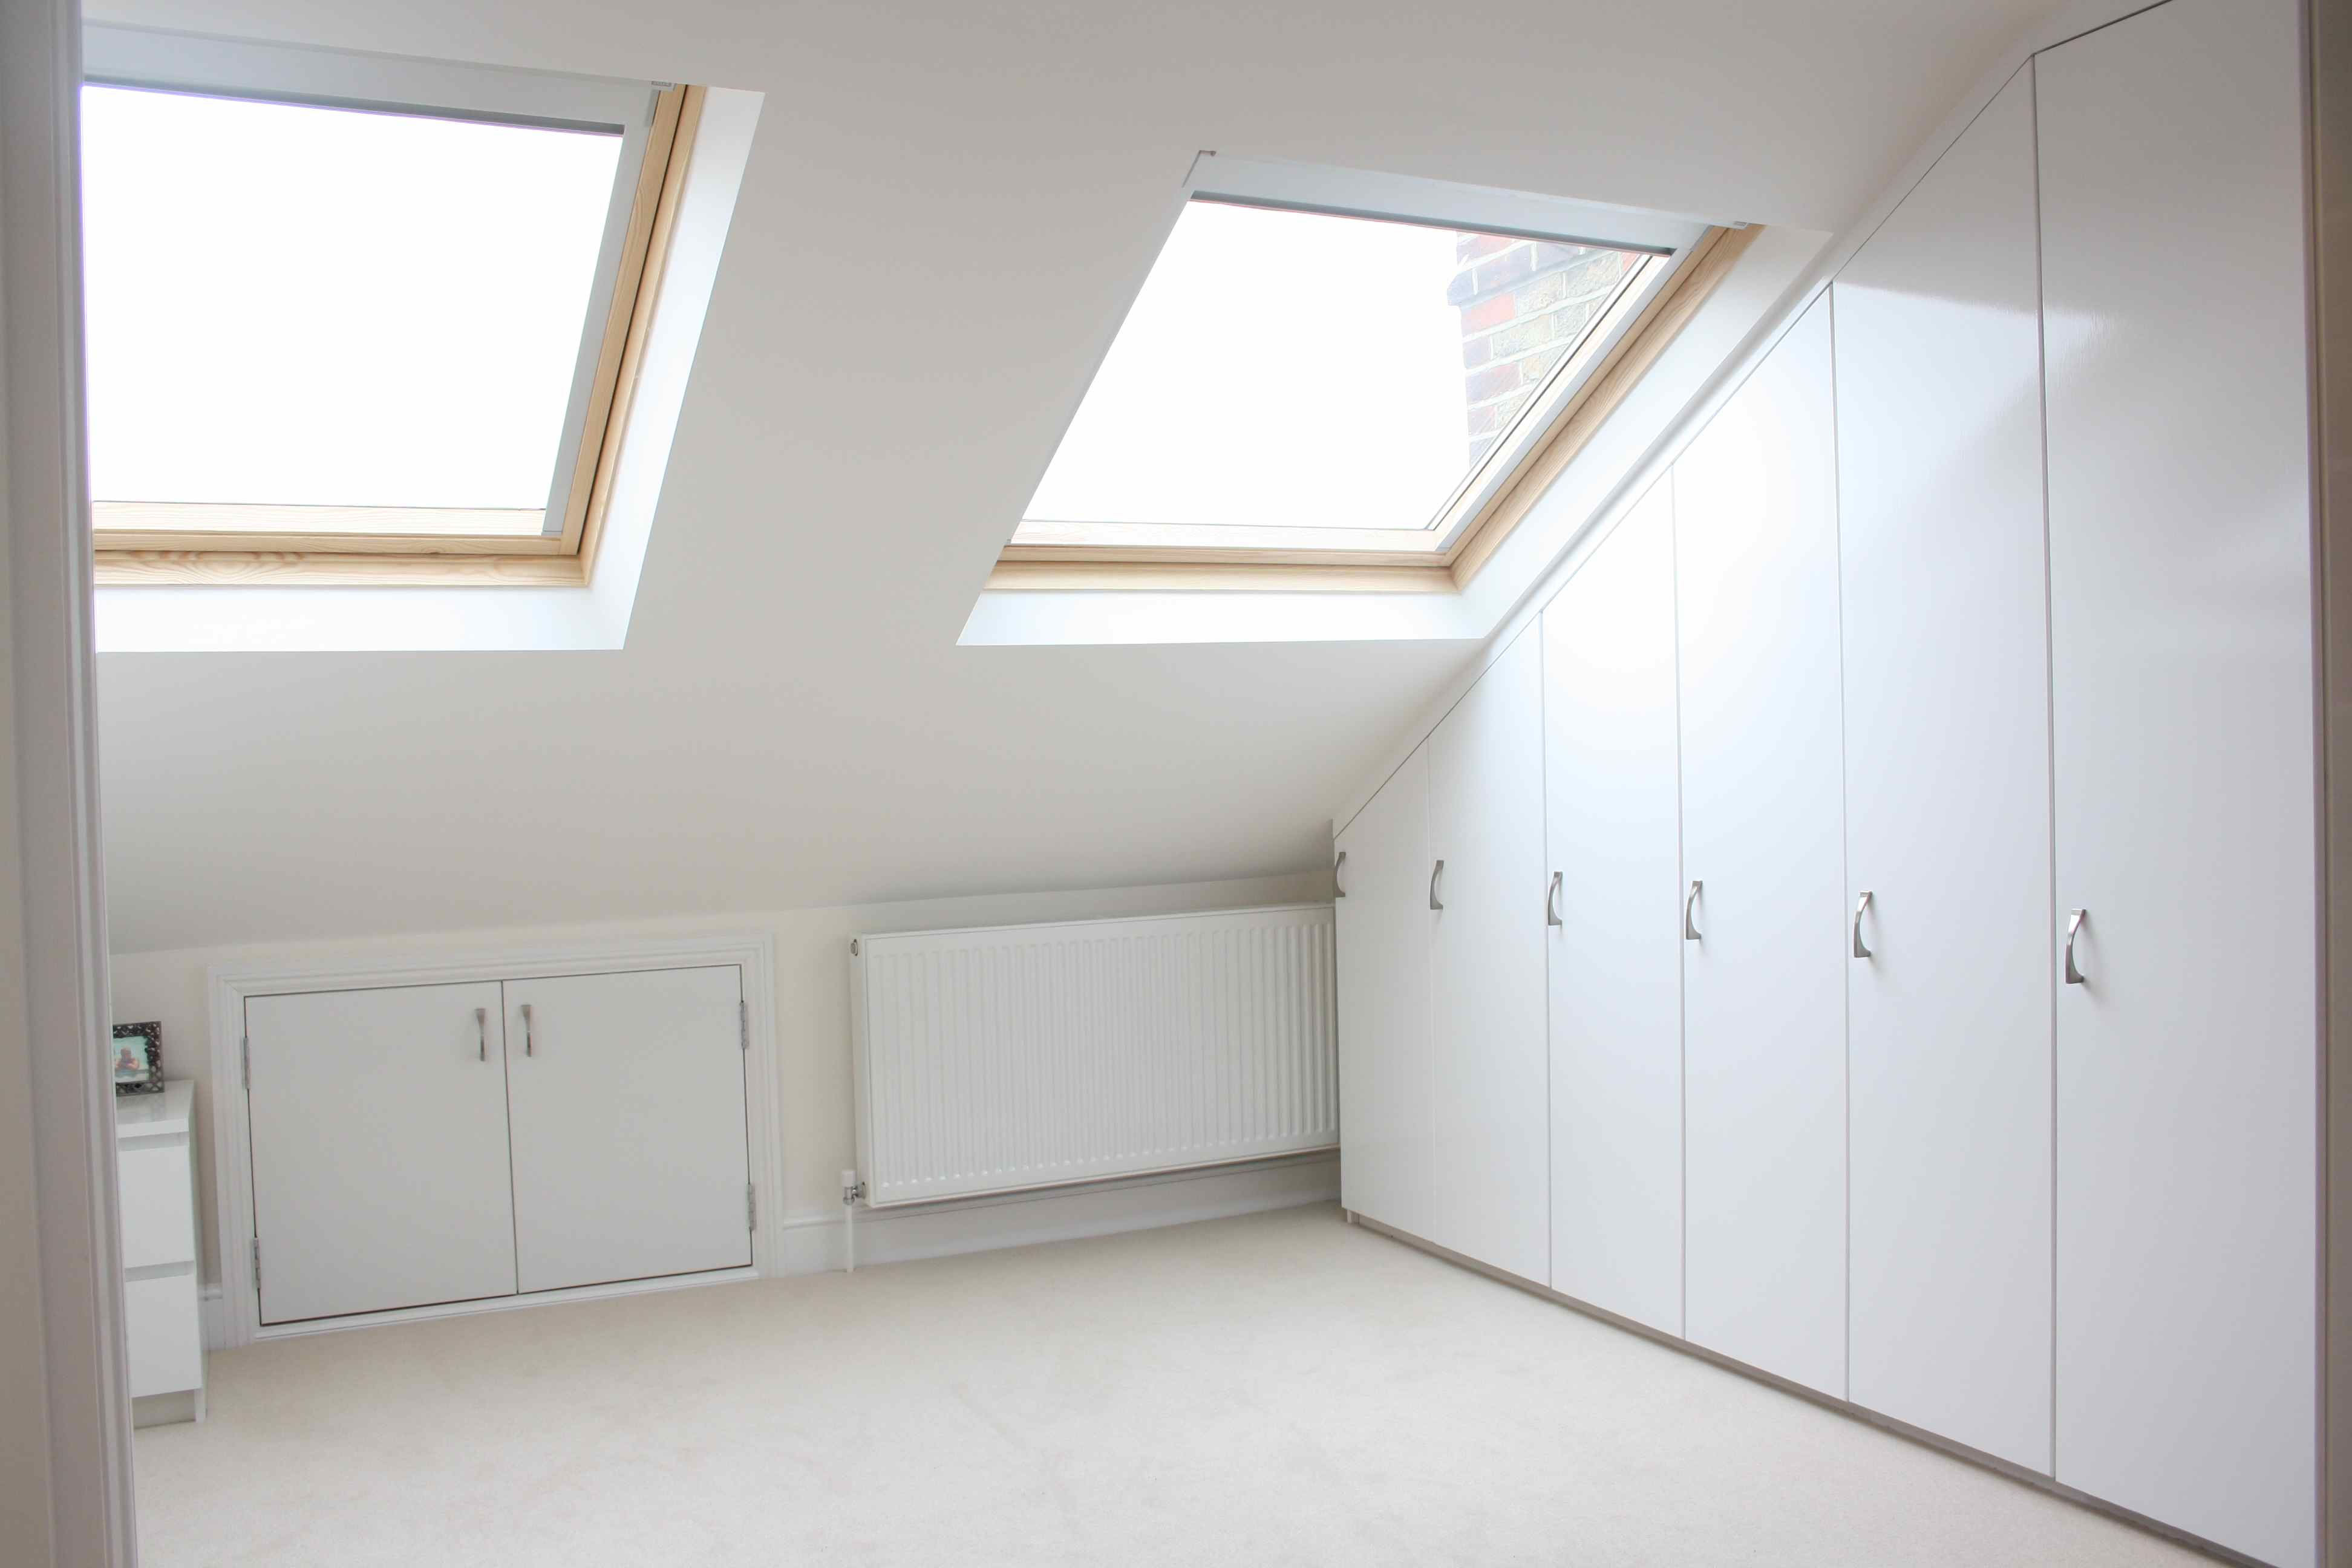 Would you use a loft conversion for storage